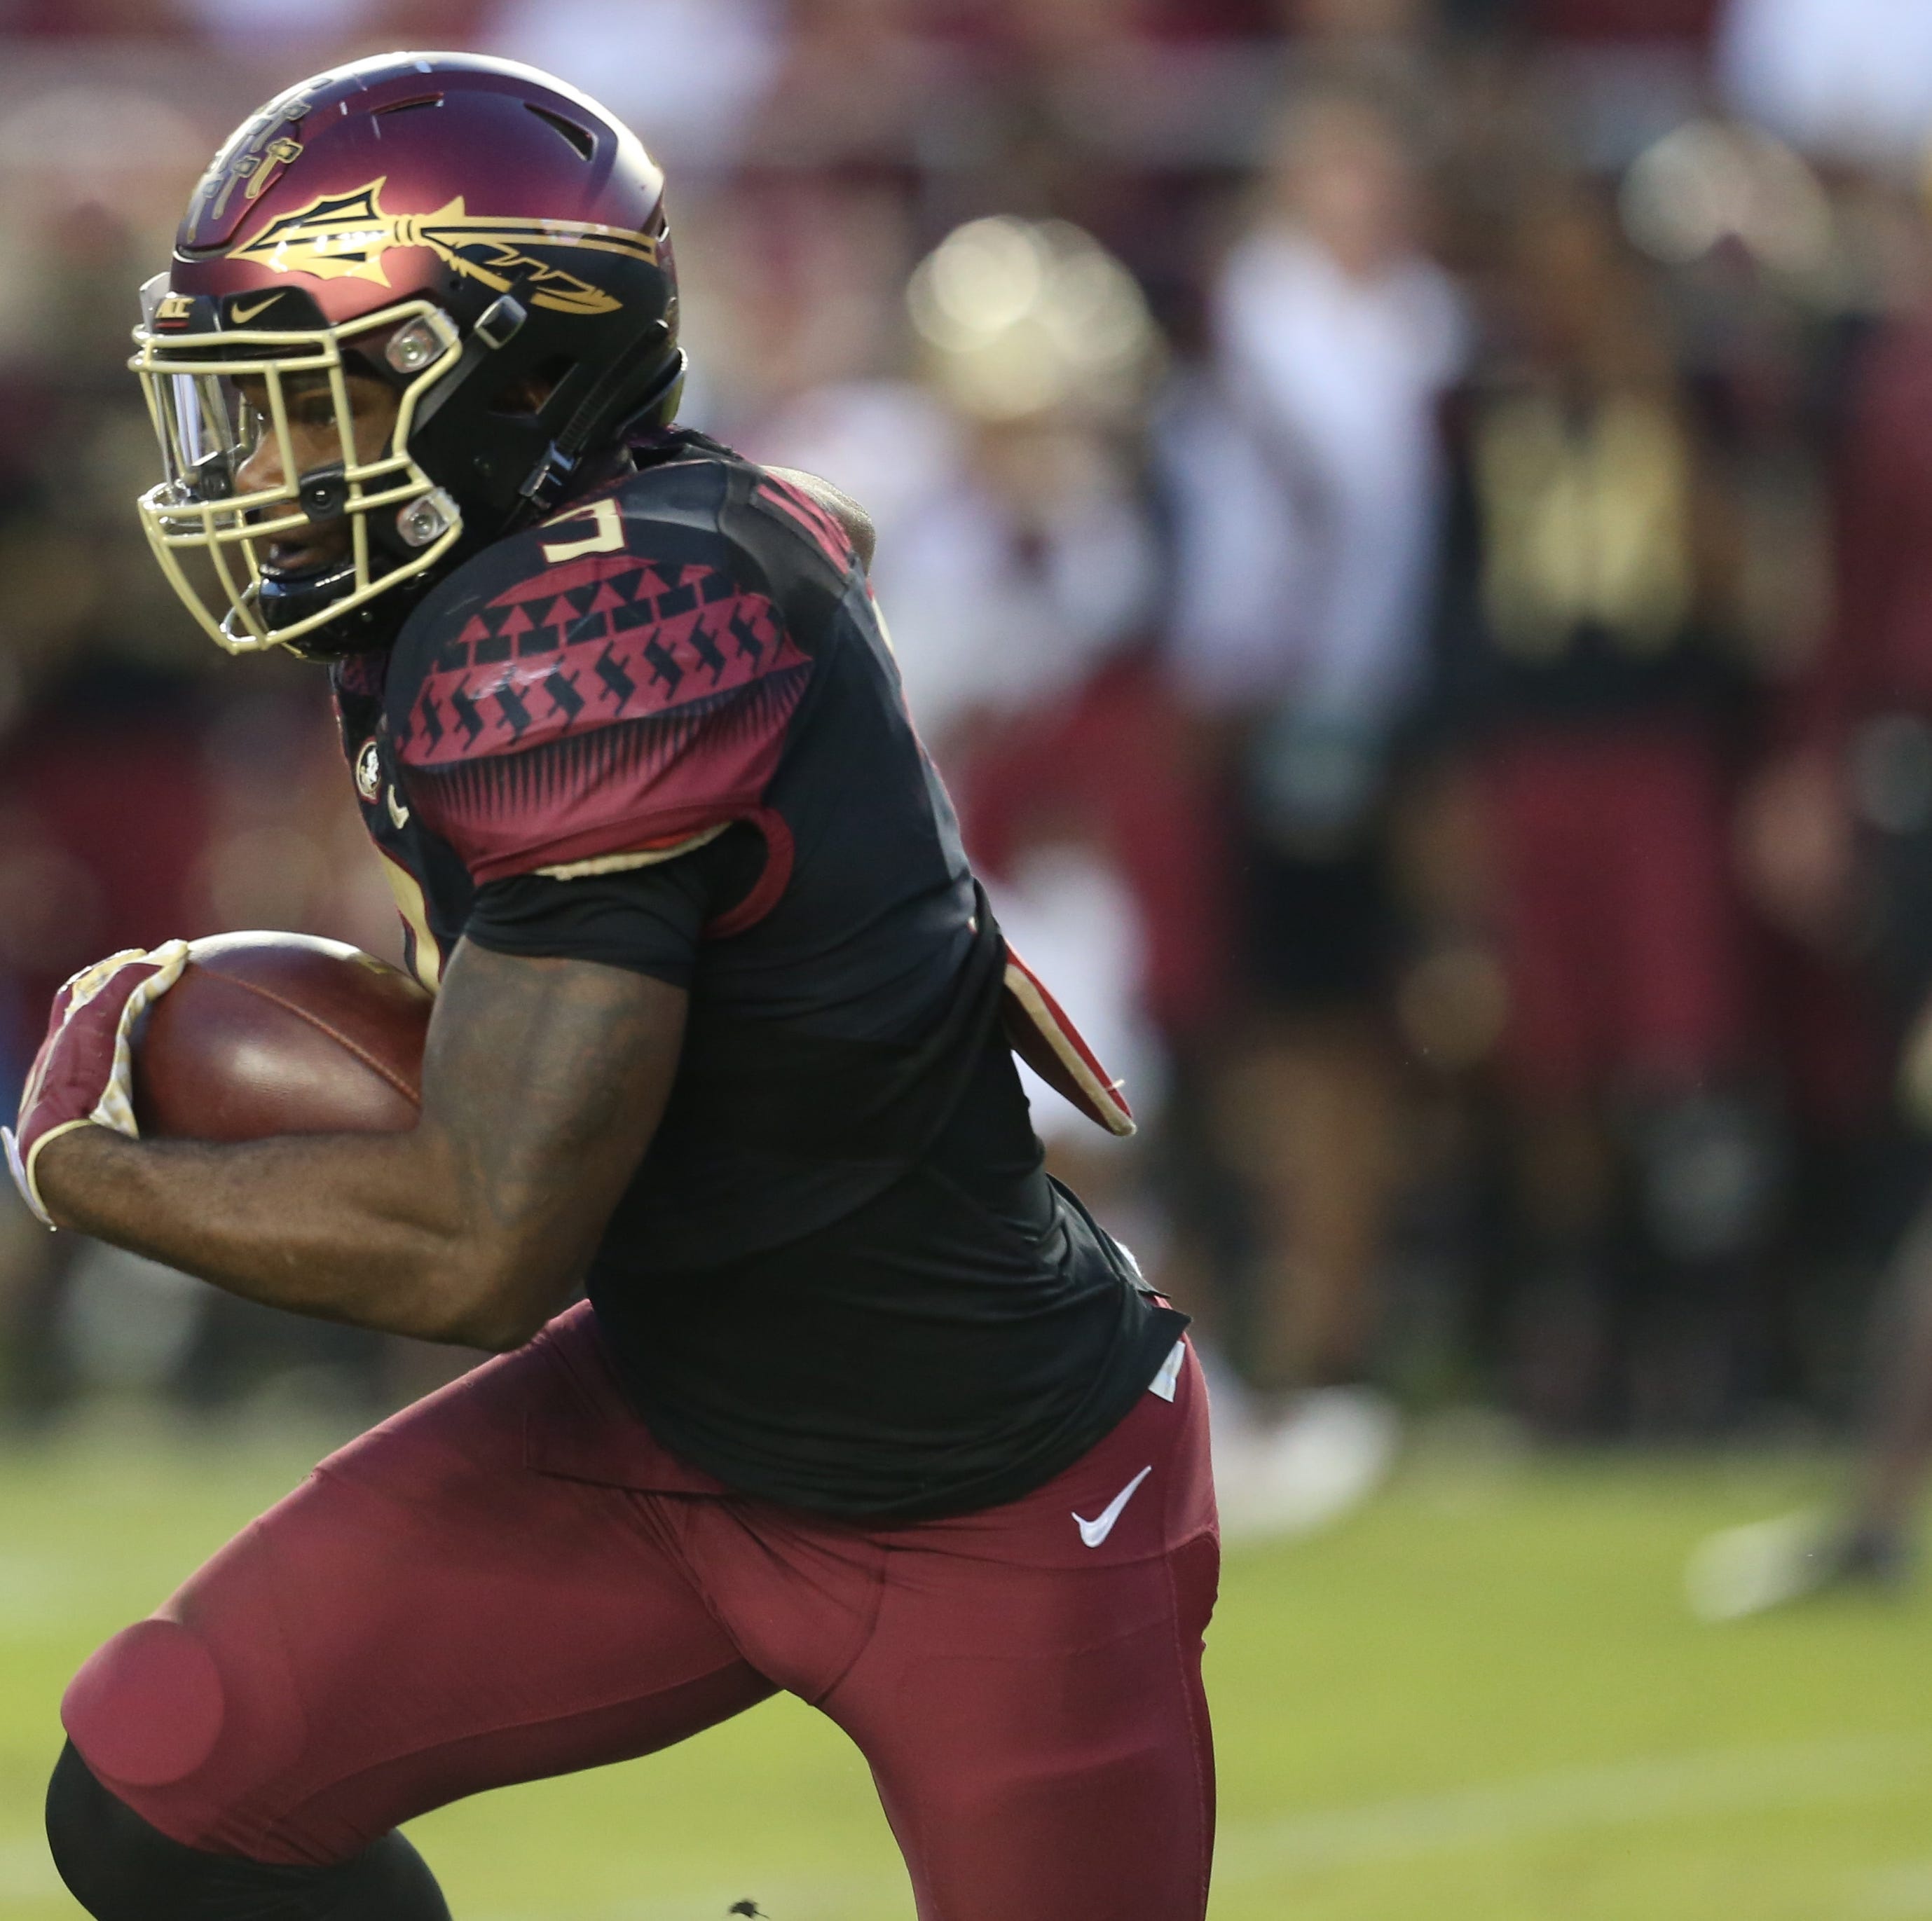 Four FSU players win five ACC Player of the Week awards